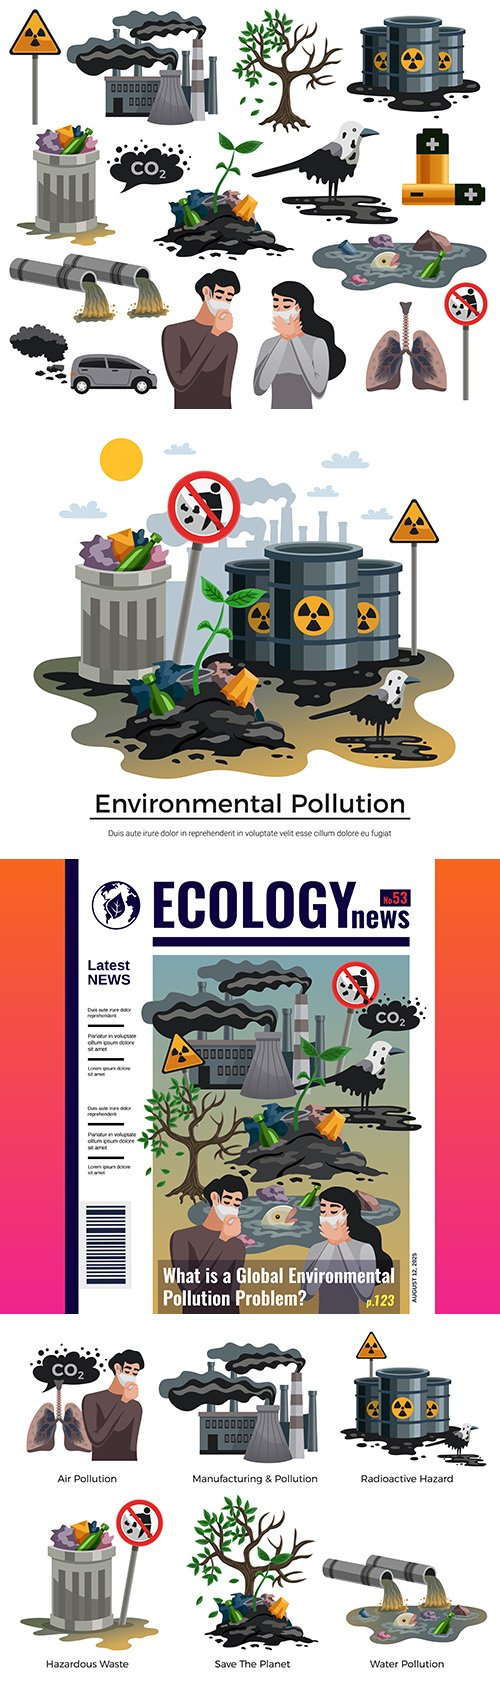 Pollution and environmental disasters illustration